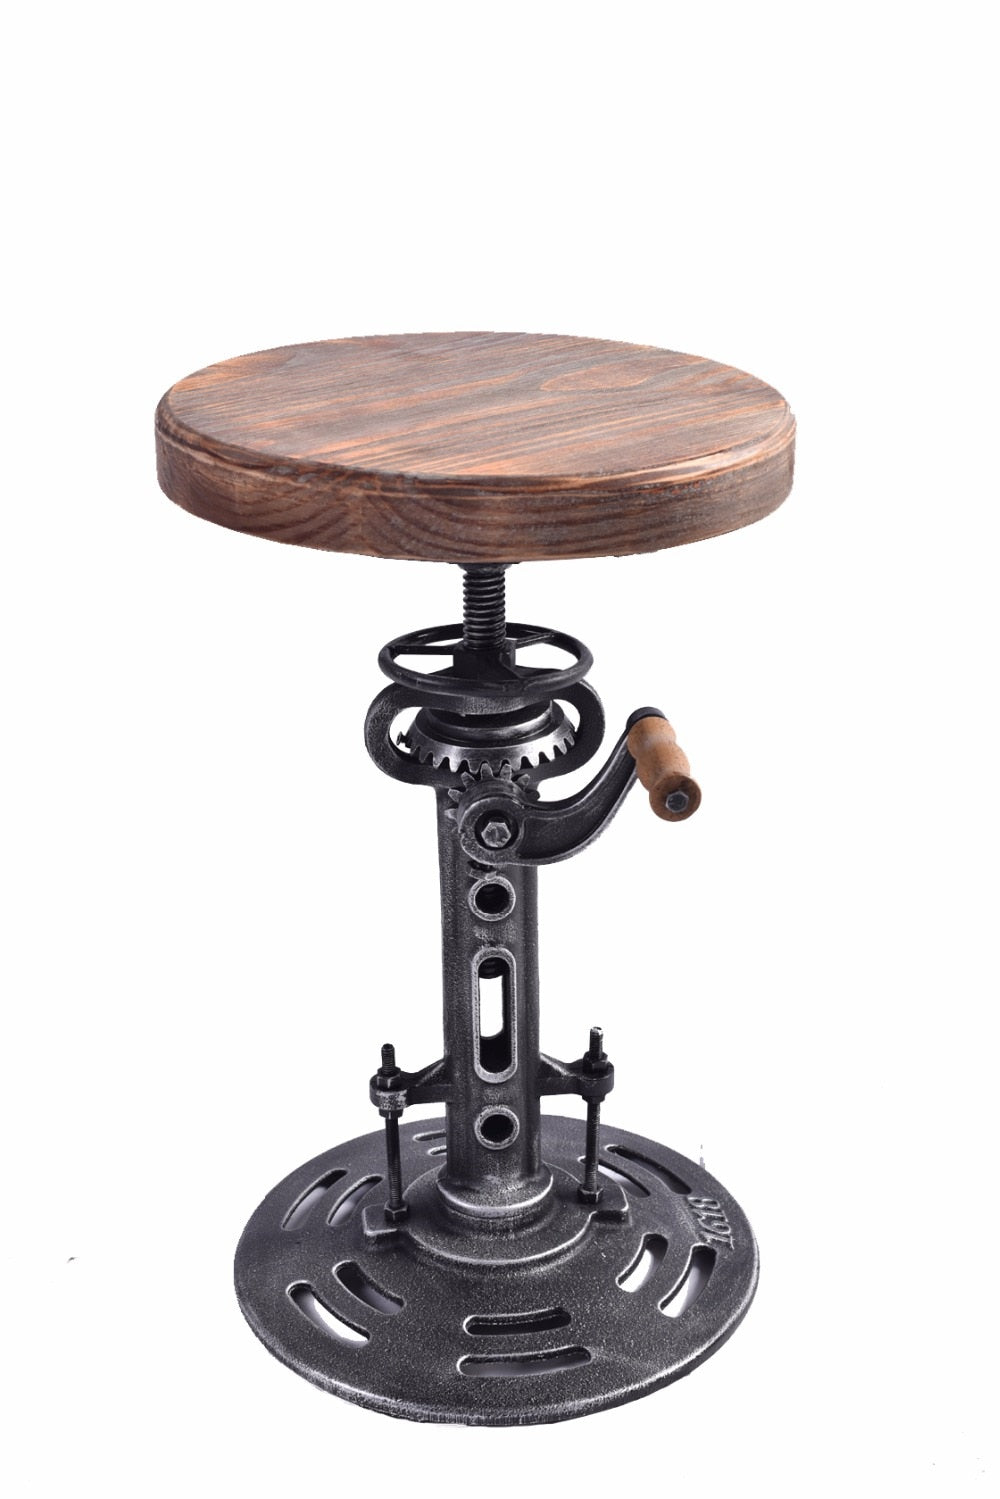 American Antique Industrial Bar Stool